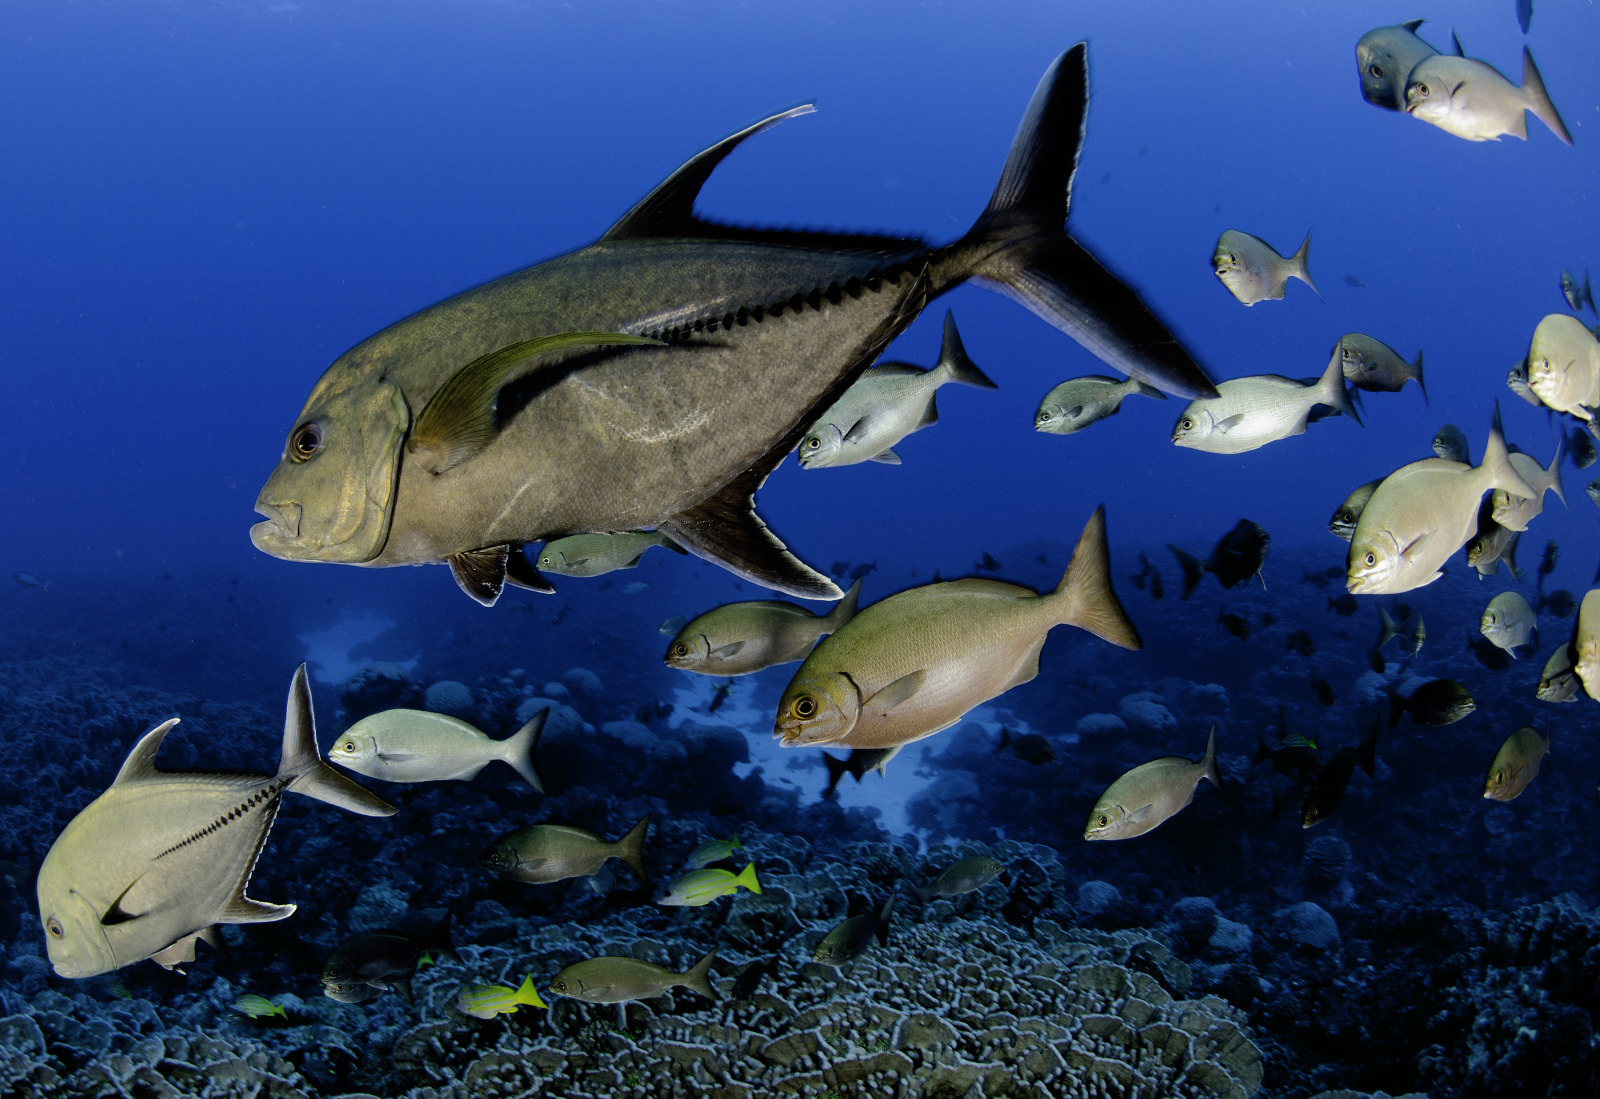 Pitcairn Island fish 1, Enric Sala, National Geographic